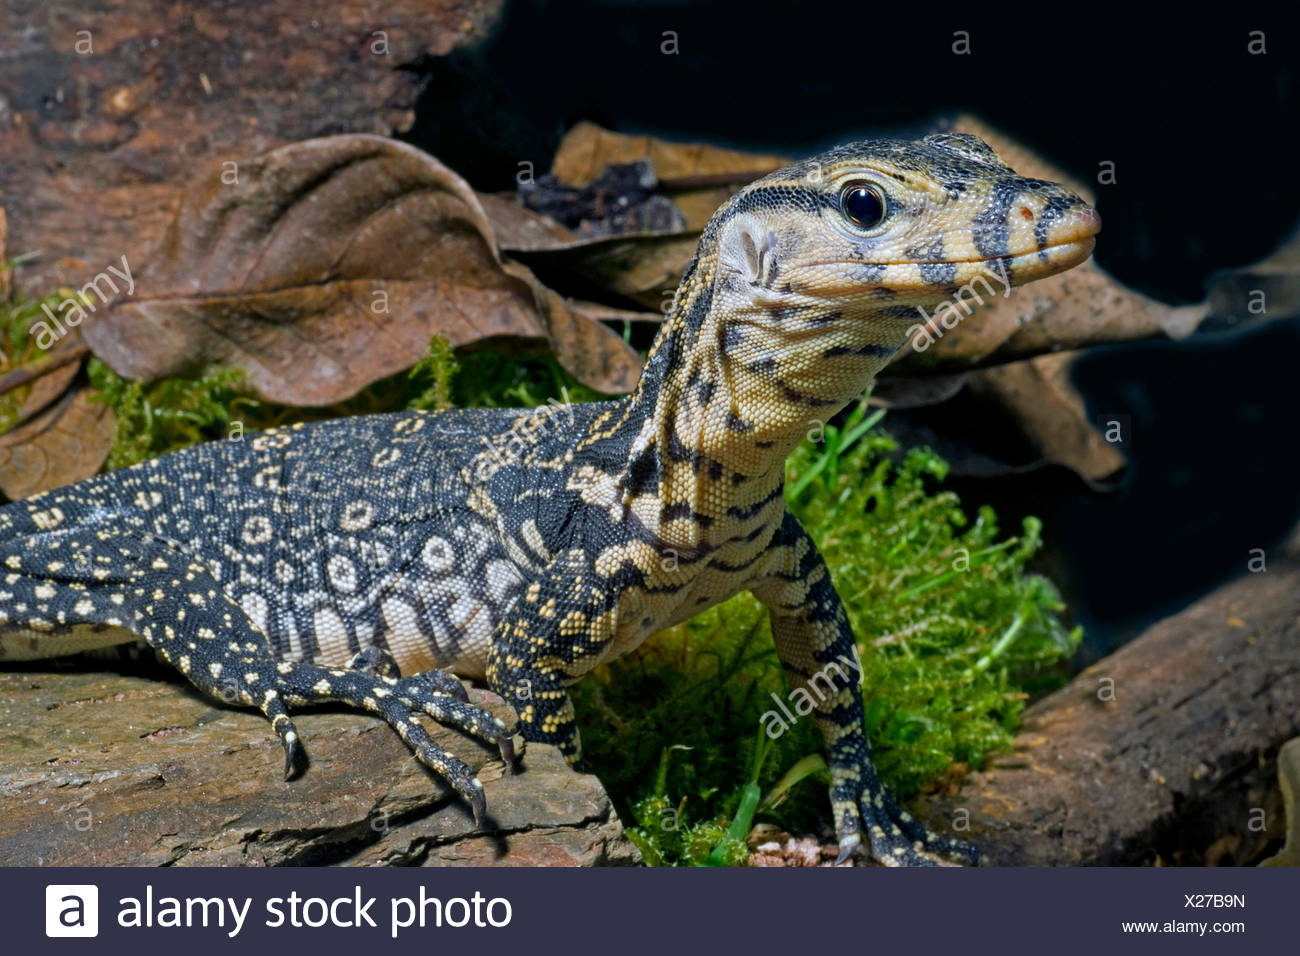 common Asiatic monitor, water monitor, common water monitor, Malayan monitor (Varanus salvator), portrait - Stock Image